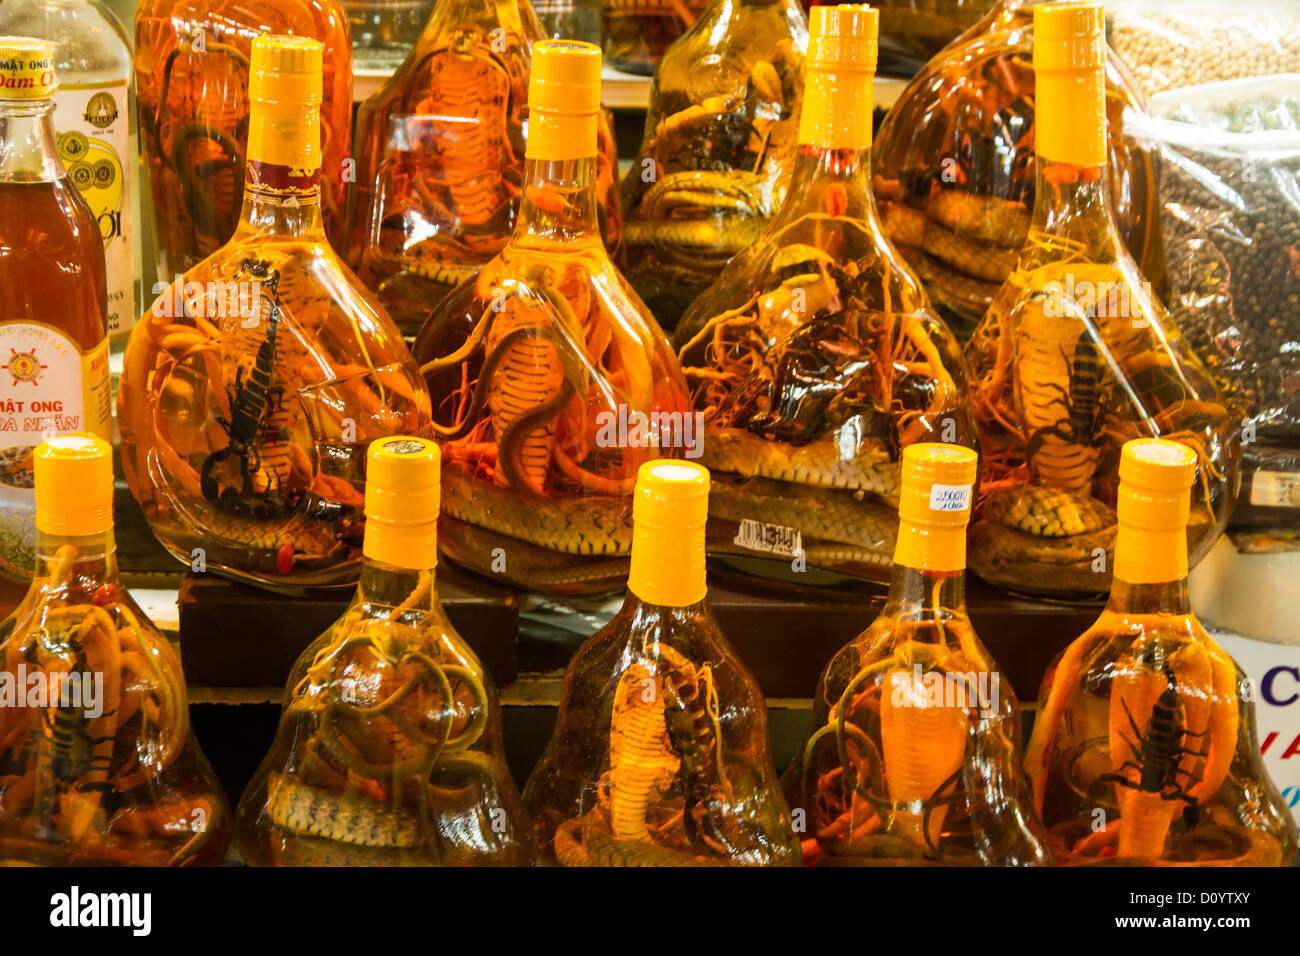 Bottles of liquor with various reptiles inside at the Ben Thanh market in Ho Chi Minh City Vietnam. - Stock Image